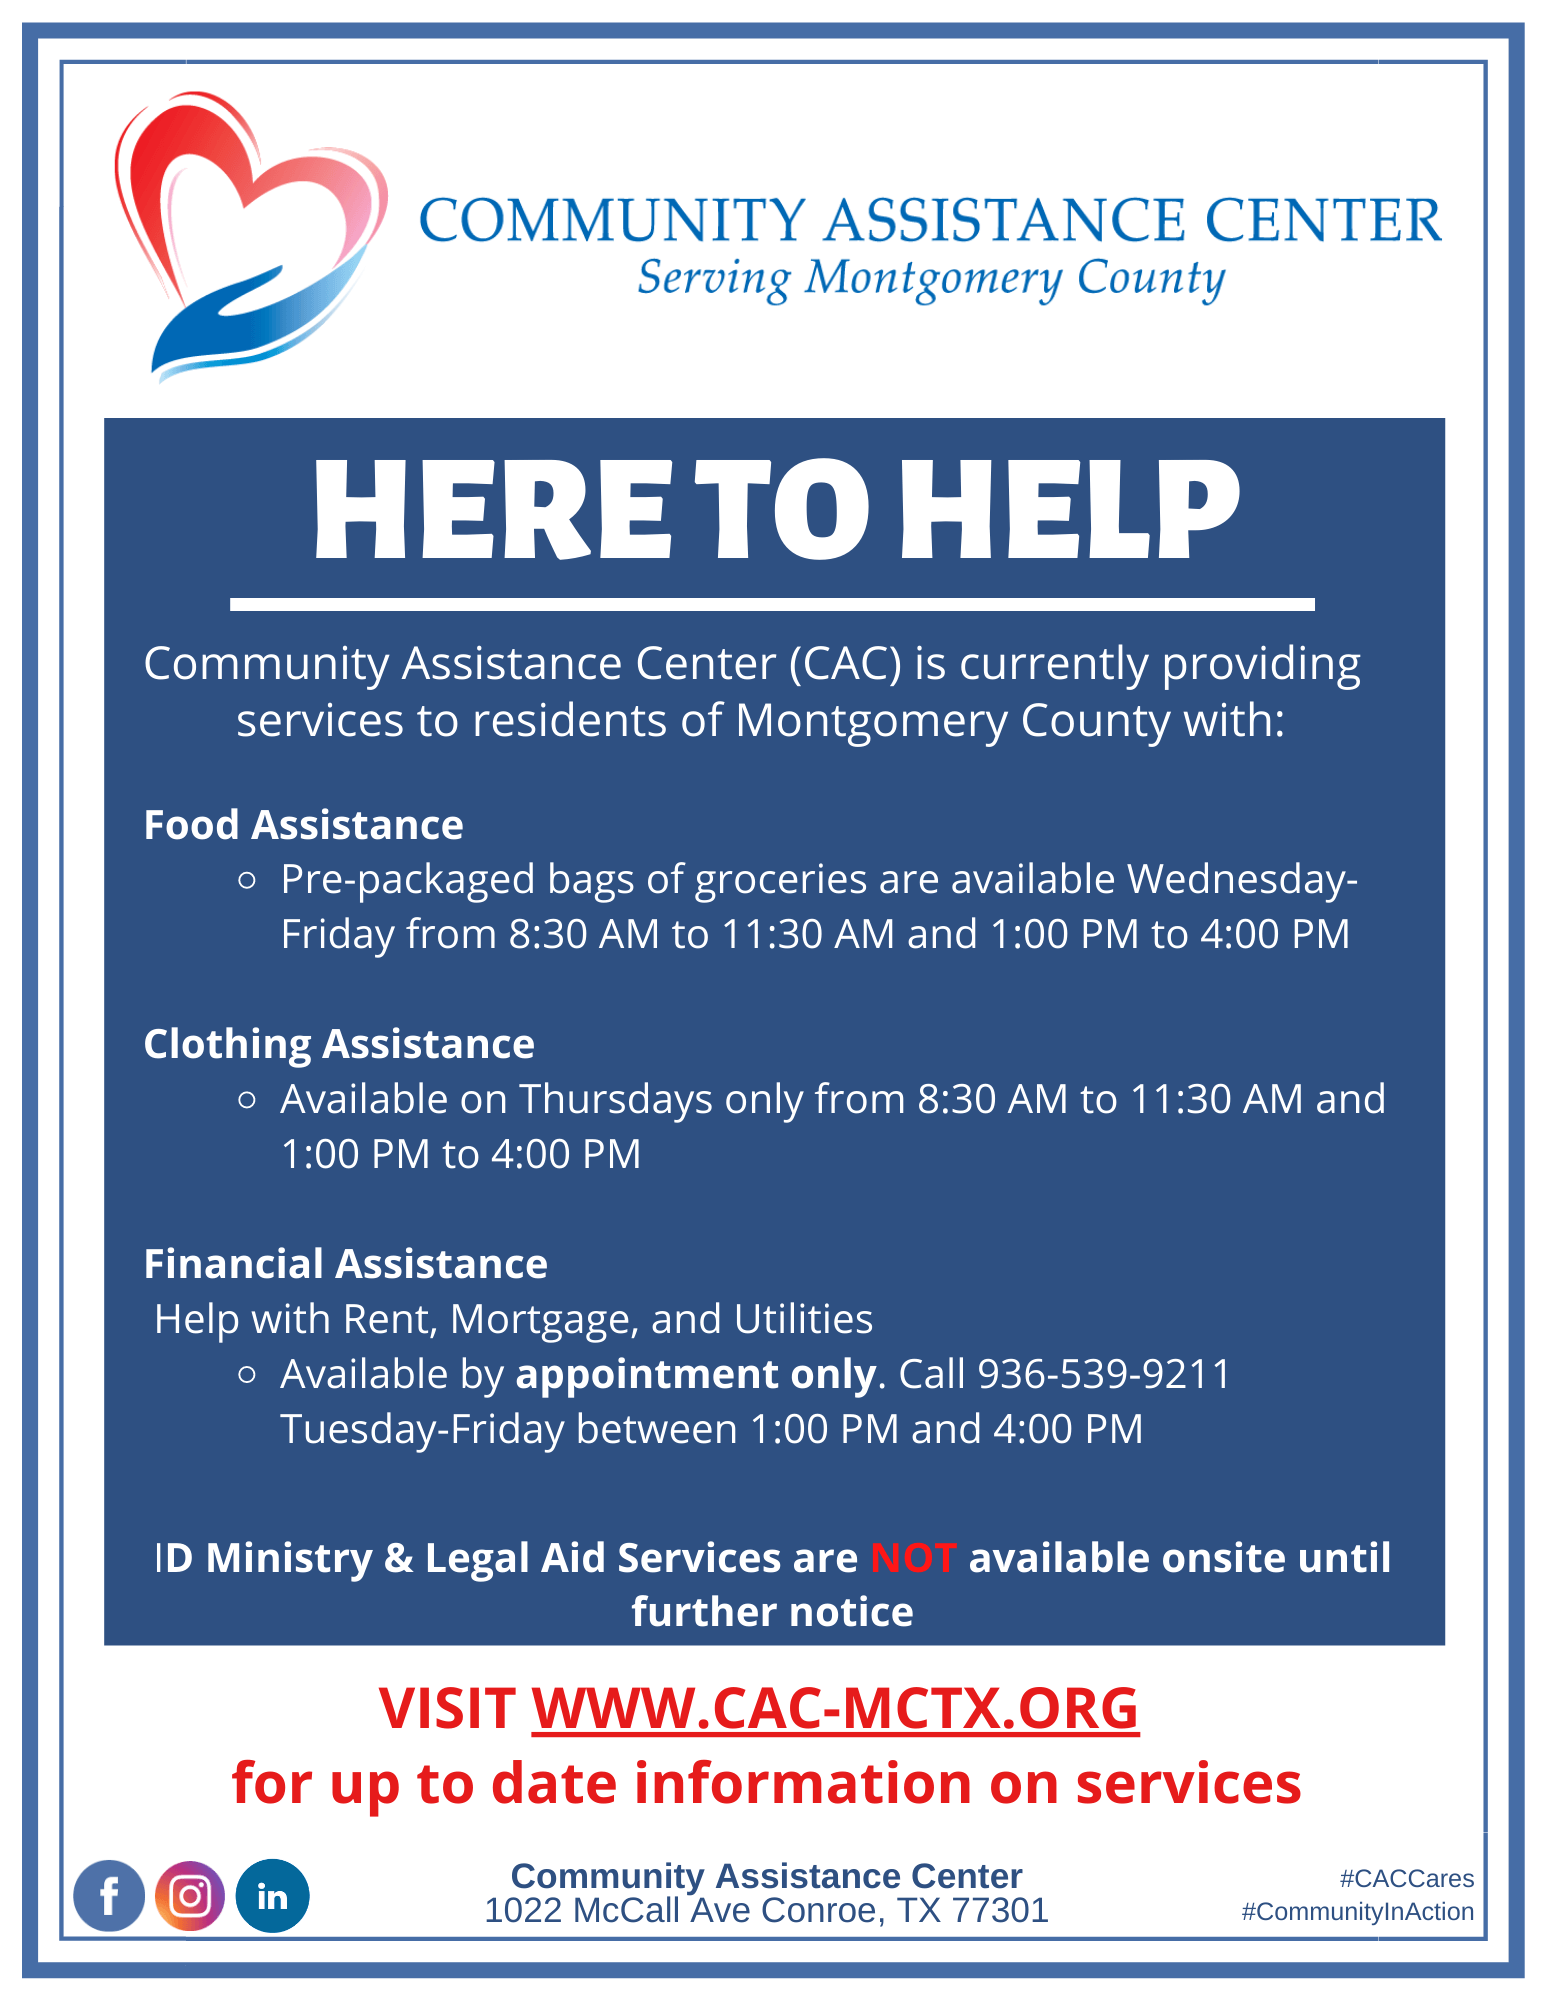 CAC is Here to Help 082020